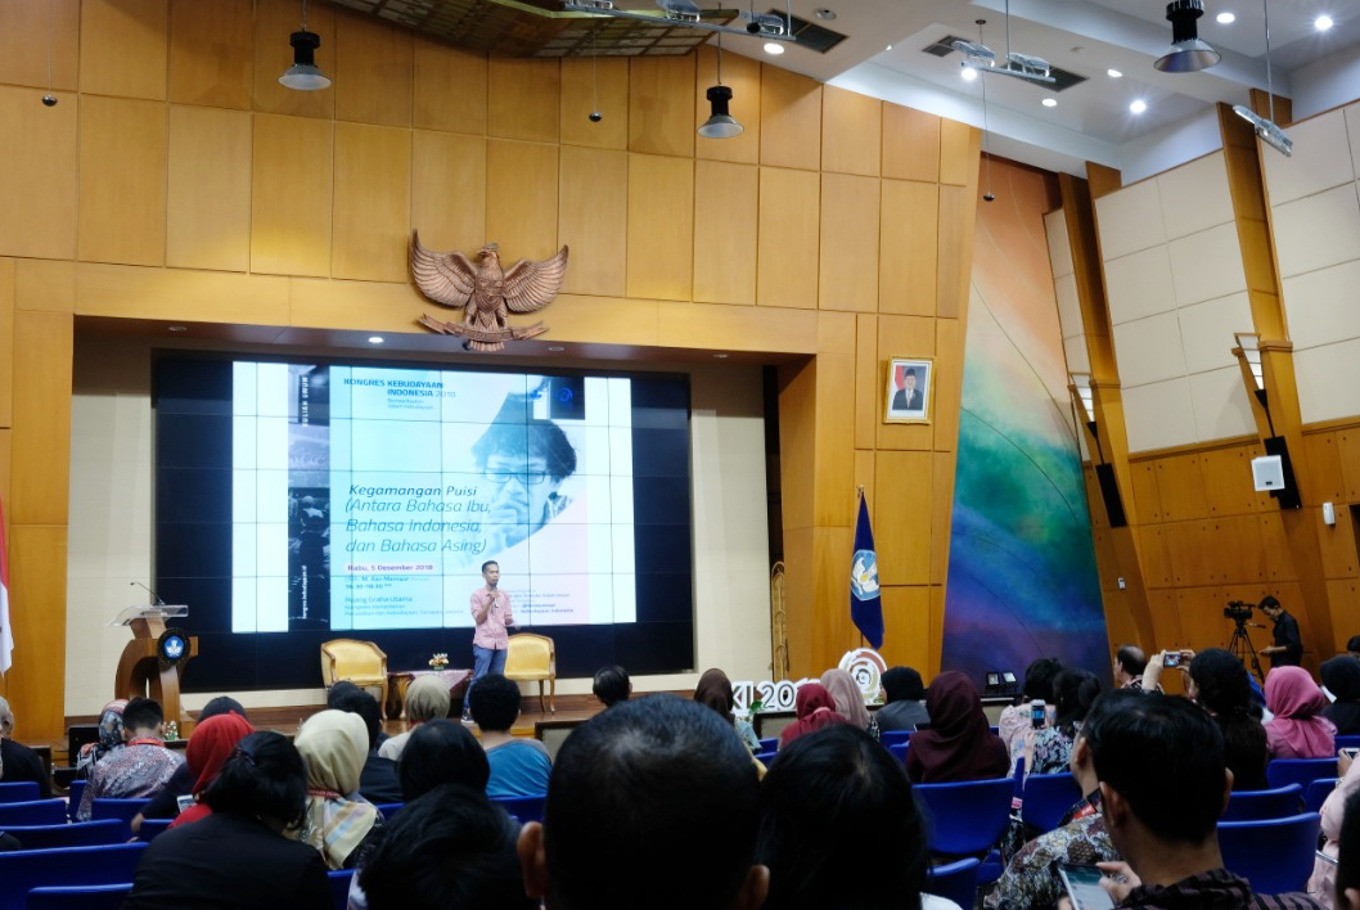 Poet Aan Mansyur highlights the power of language at Cultural Congress